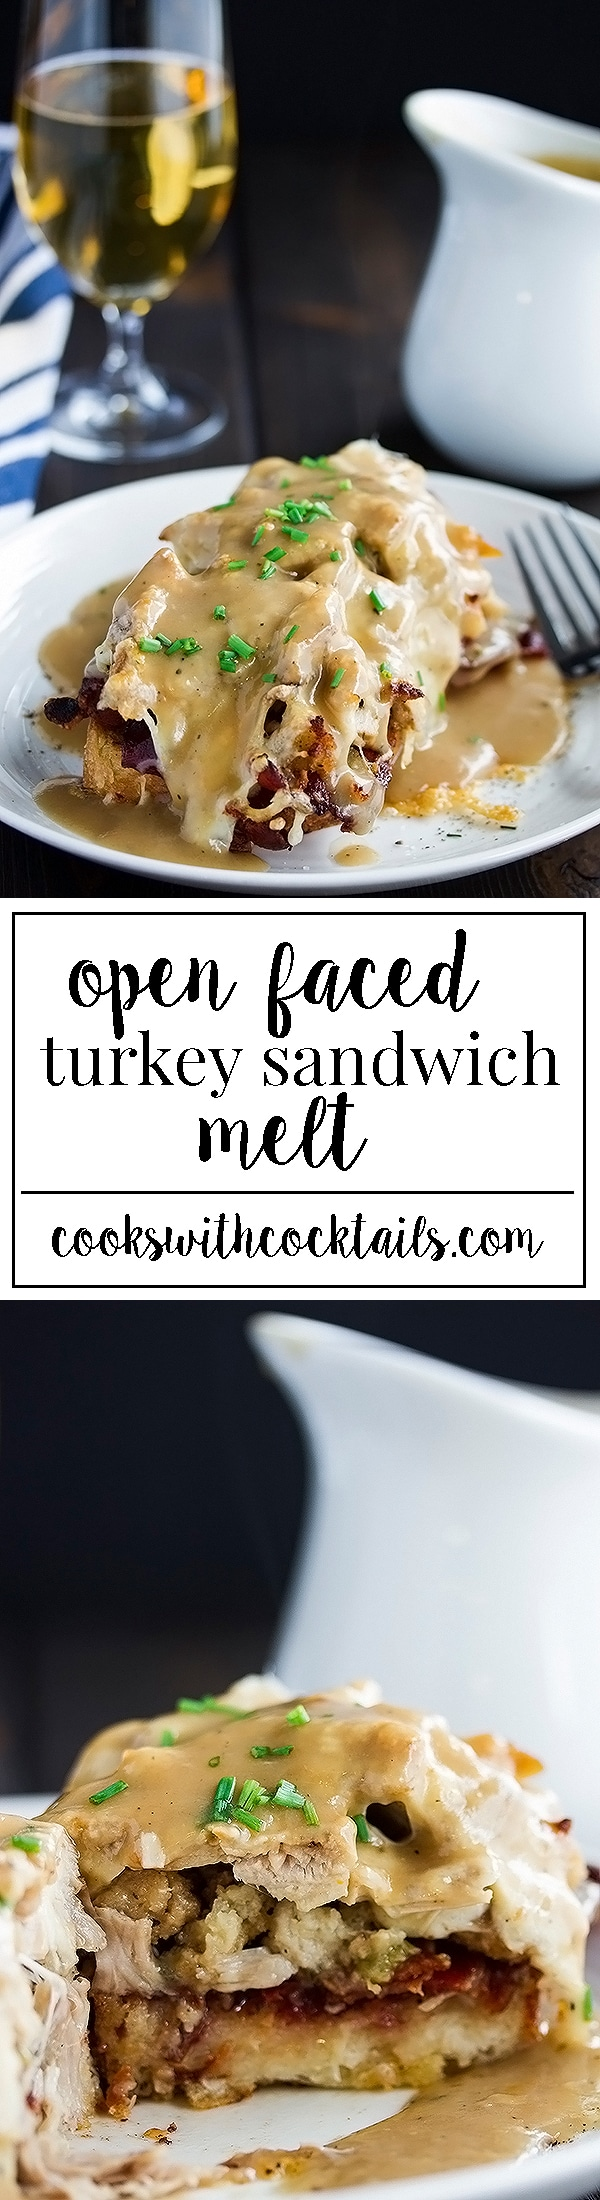 Open faced turkey sandwich melt with sweet cranberry sauce, bacon, turkey stuffing, and left over turkey all under a thick slice of melted cheese and smothered in turkey gravy. It's like a turkey dinner in every bite! #turkeysandwich #sandwich #cheesemelt